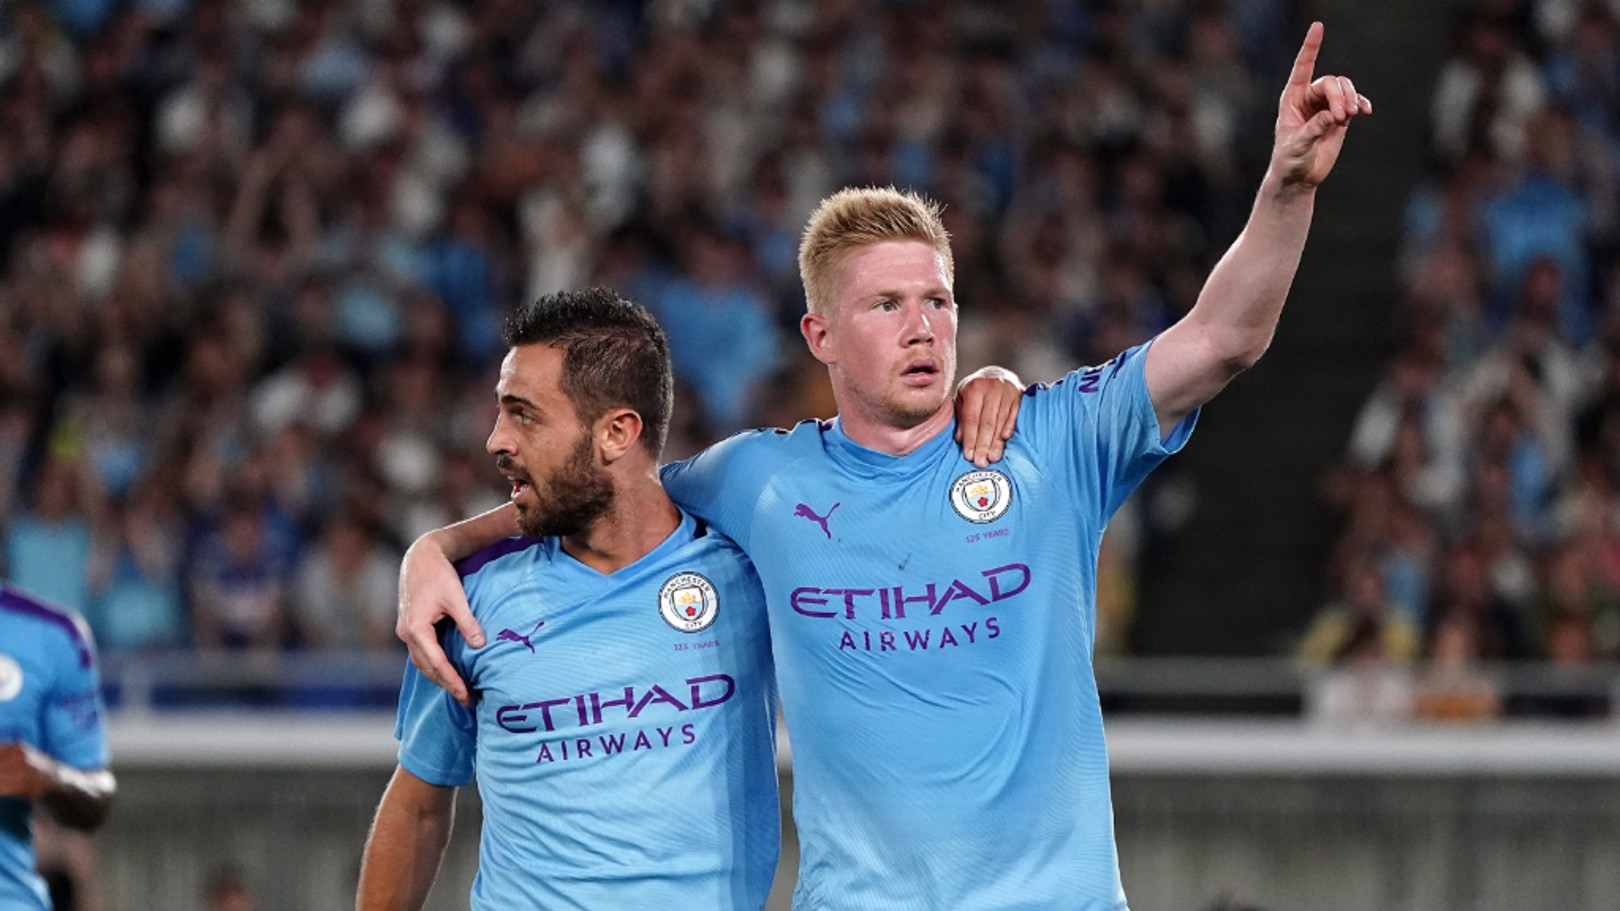 BLUES BROTHERS: Bernardo Silva and Kevin De Bruyne on City's Champions League hopes